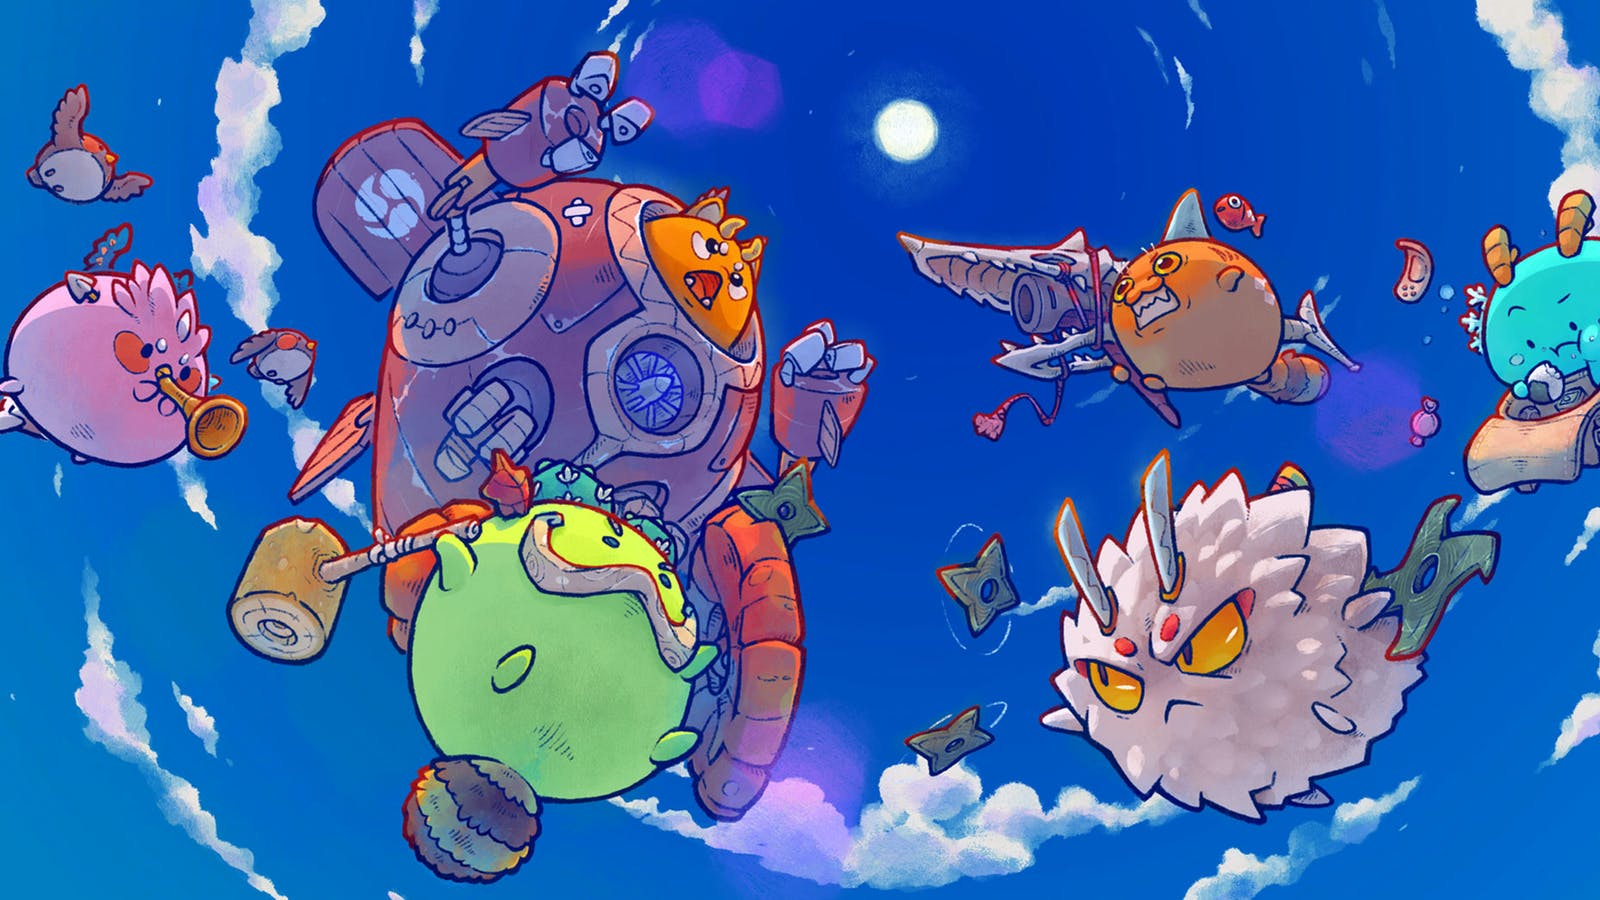 Art from the Axie Infinity NFT game. Photo: Axie Infinity